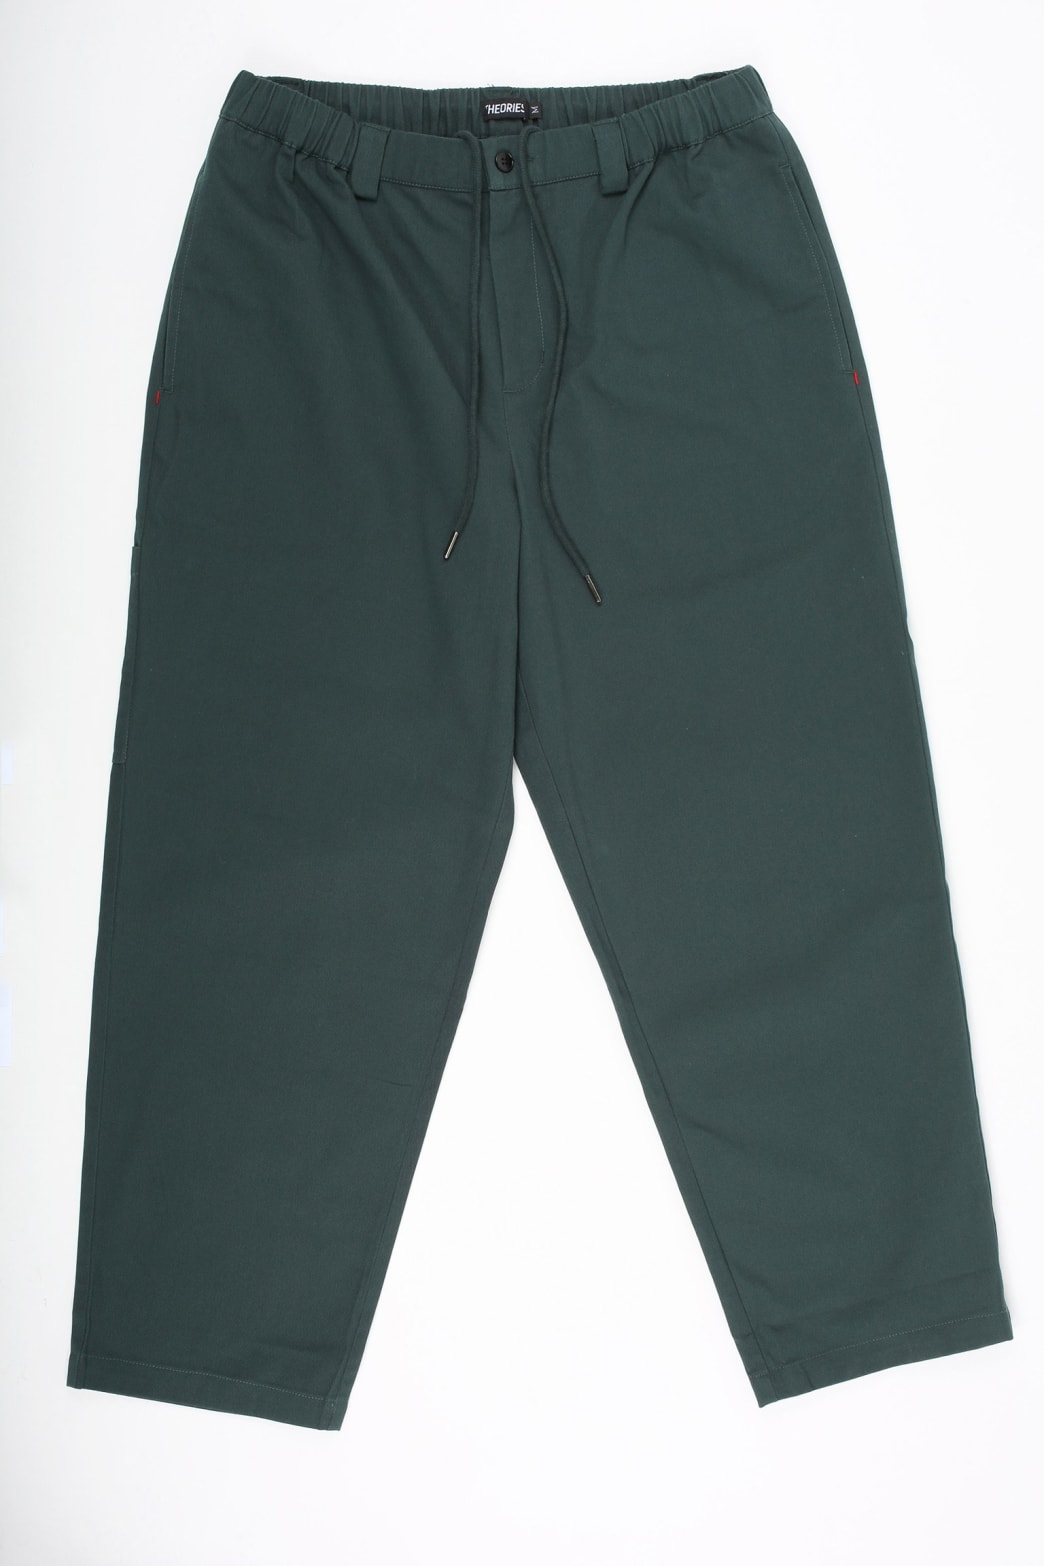 Theories Brand- Stamp Lounge Pant Scarab | Trousers by Theories of Atlantis 1